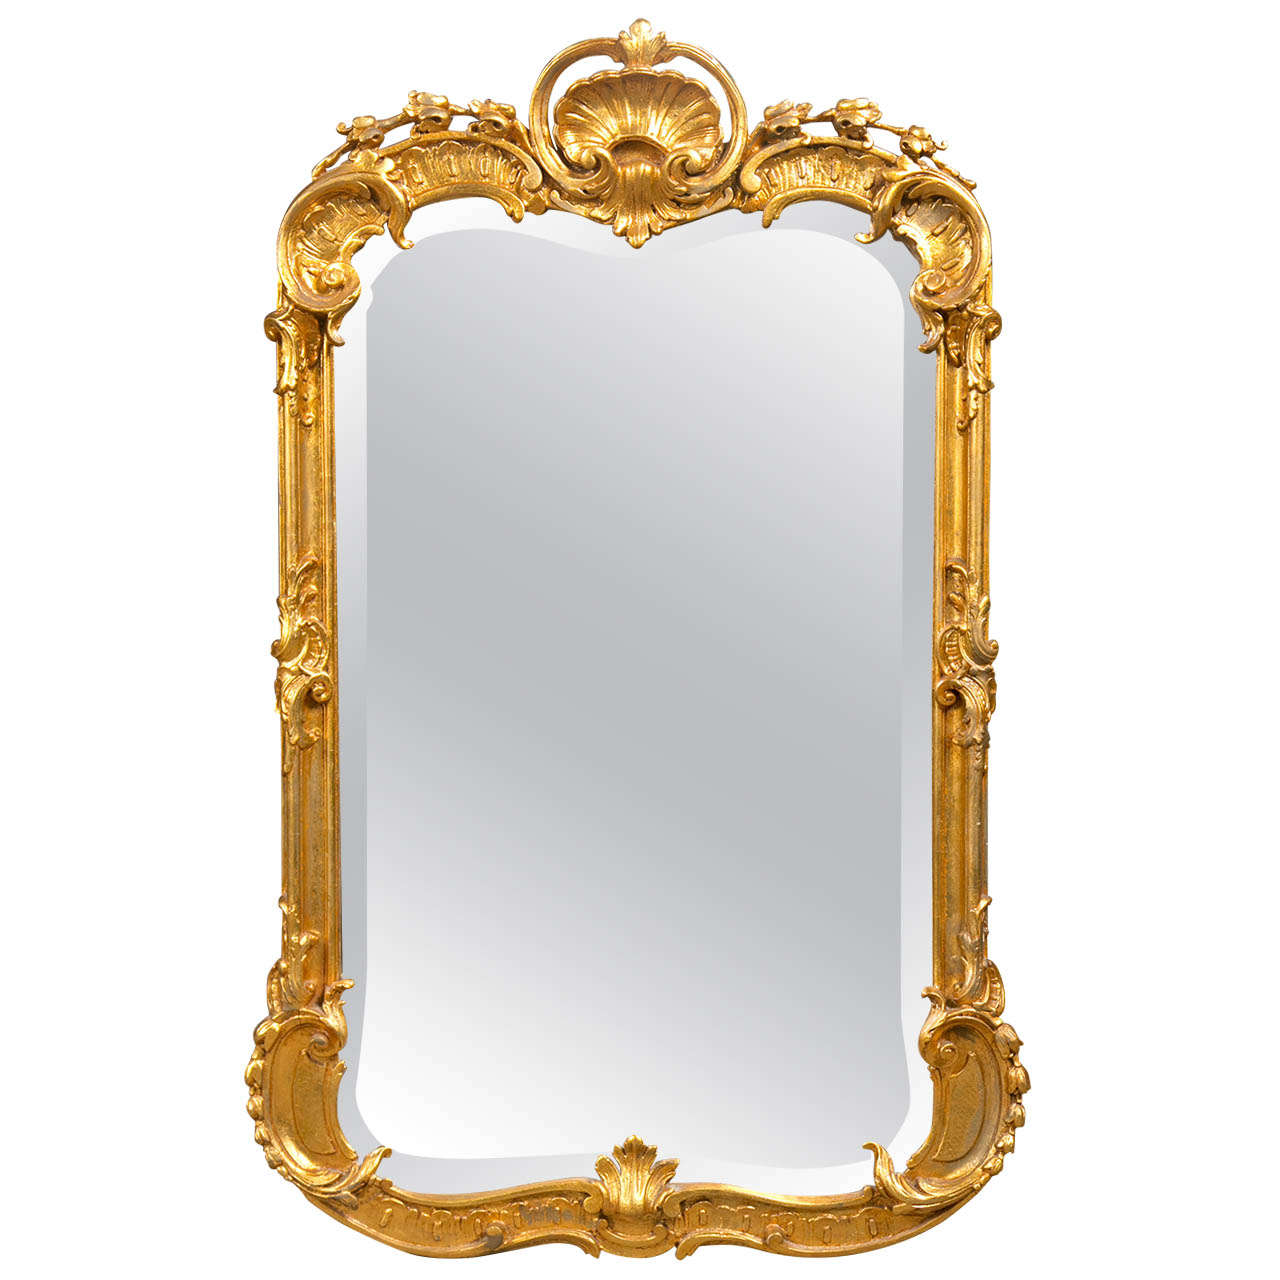 French rococo style gilded mirror at 1stdibs for French mirror